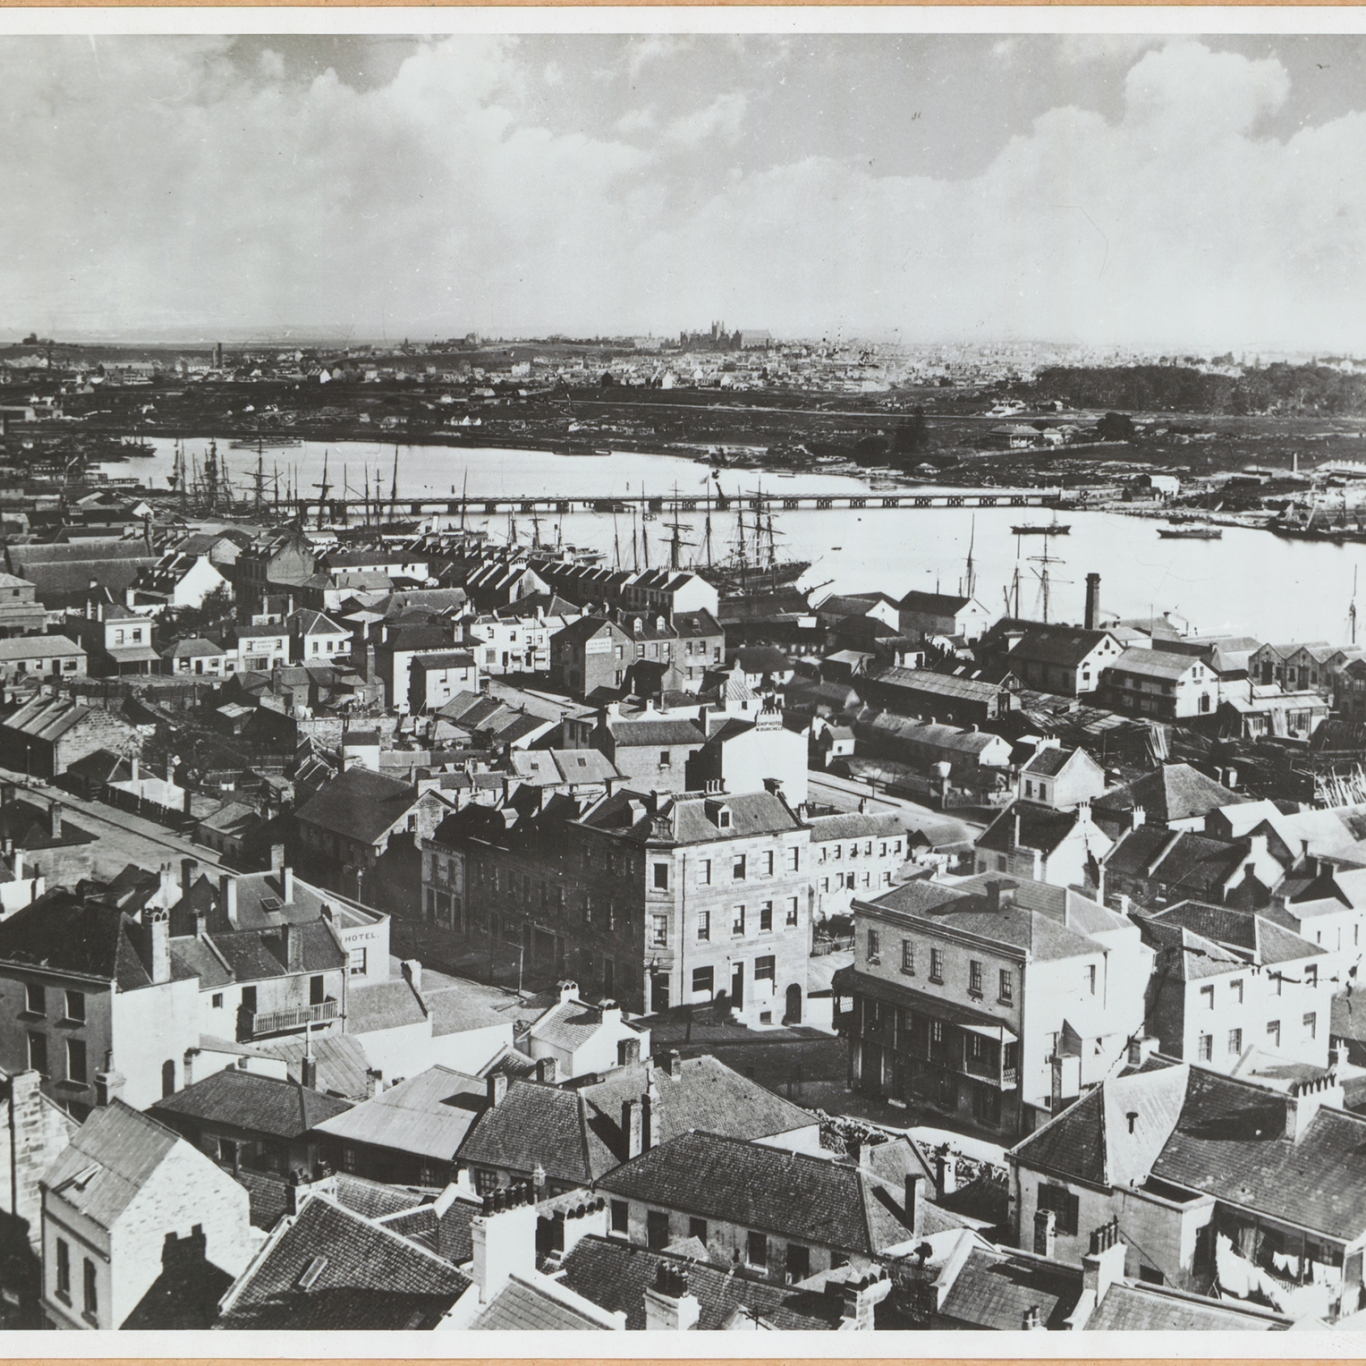 Black and white photograph looking down across buildings to water in middle distance.